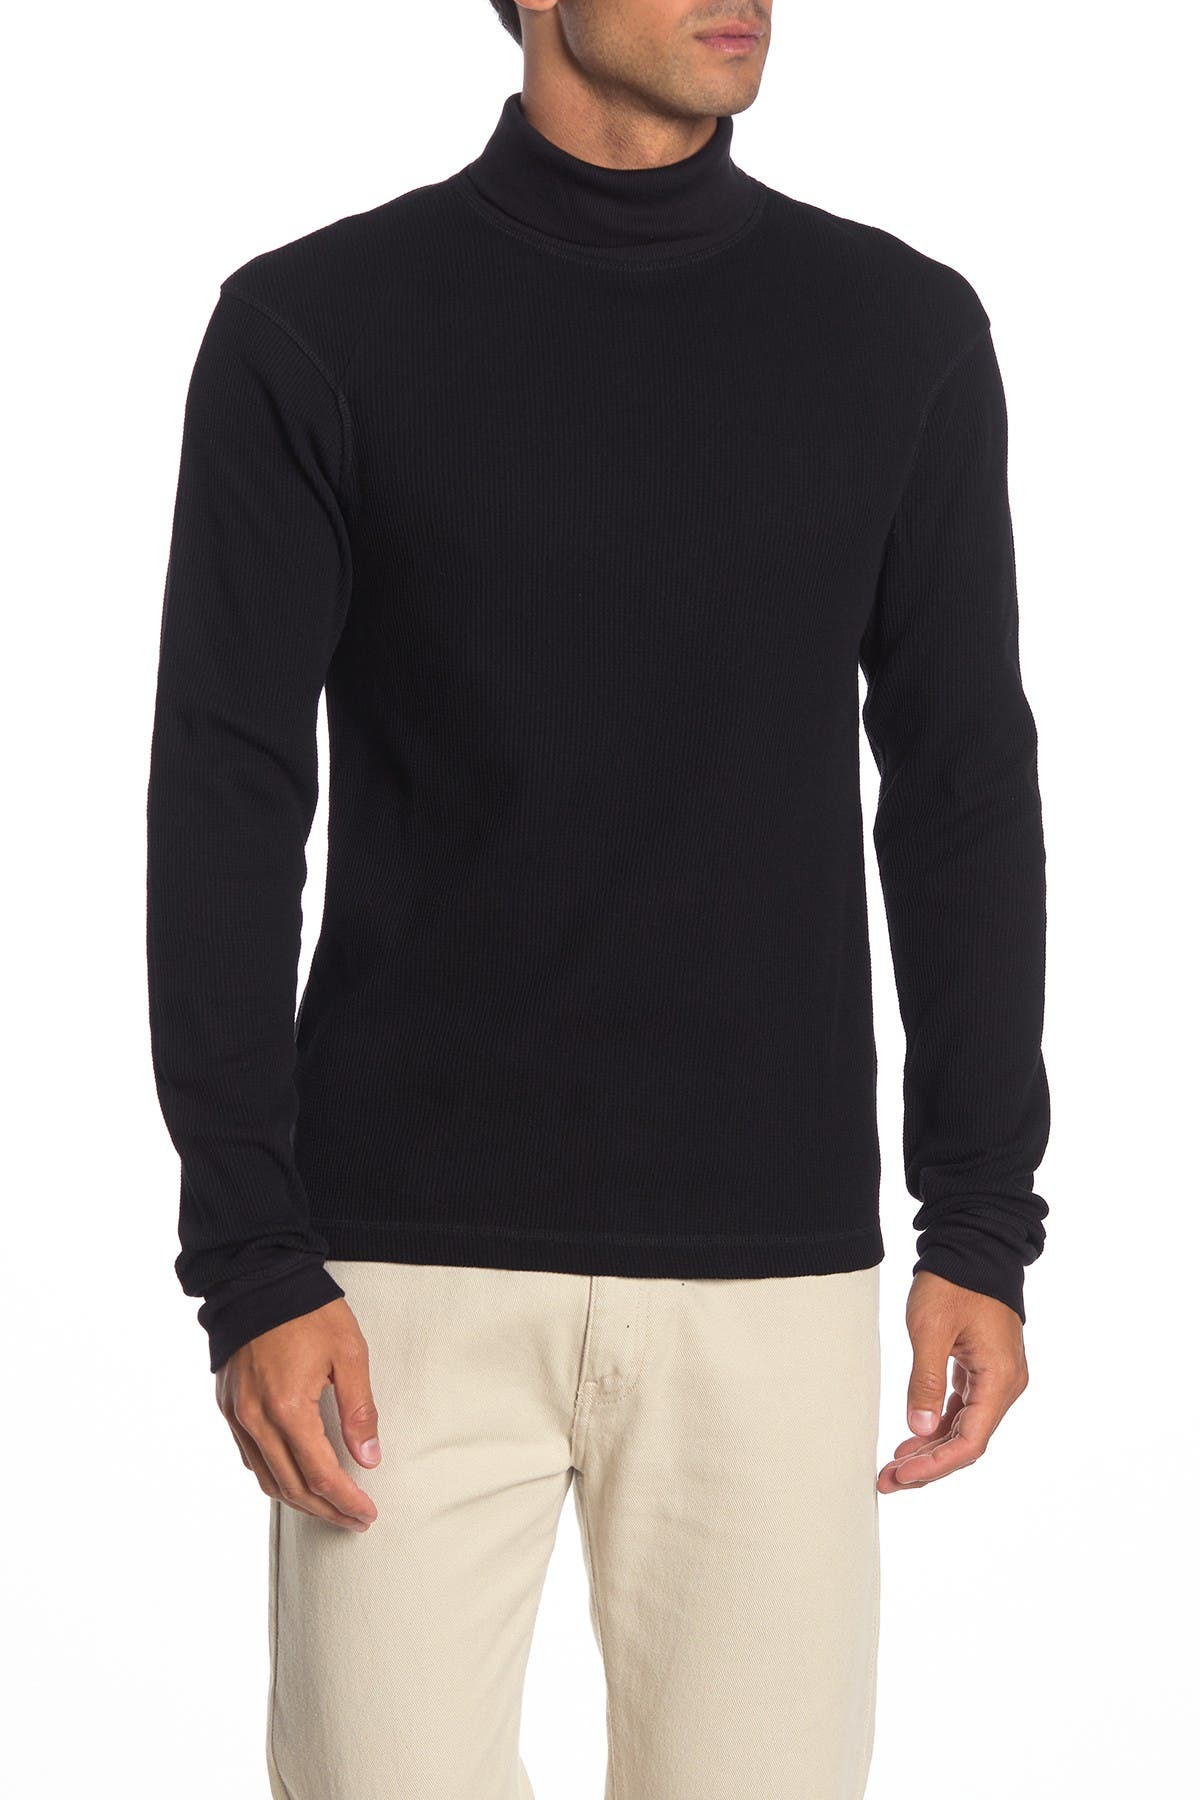 Image of Helmut Lang Thermal Long Sleeve Turtleneck